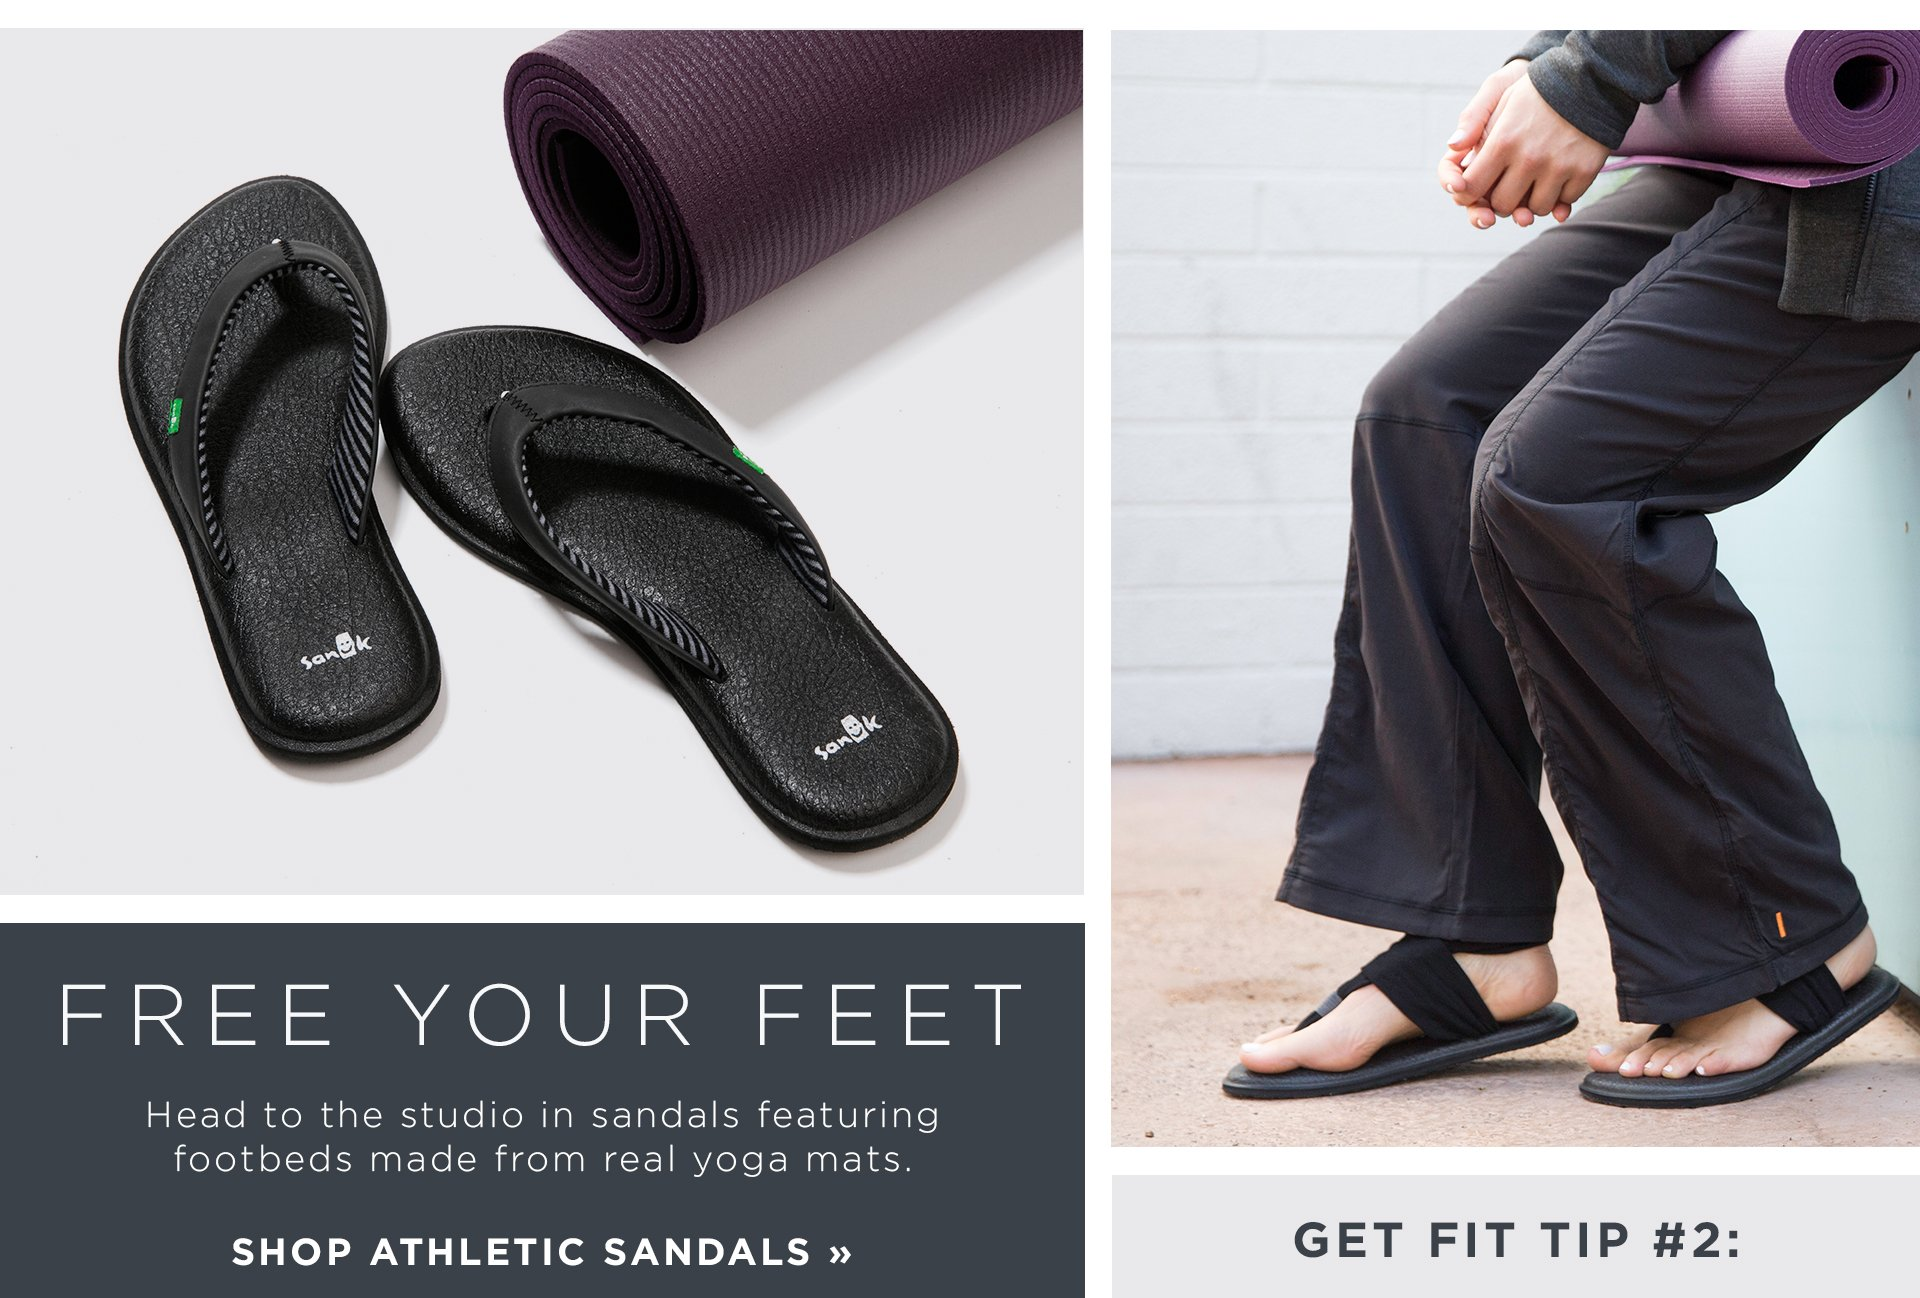 Shop Athletic Sandals